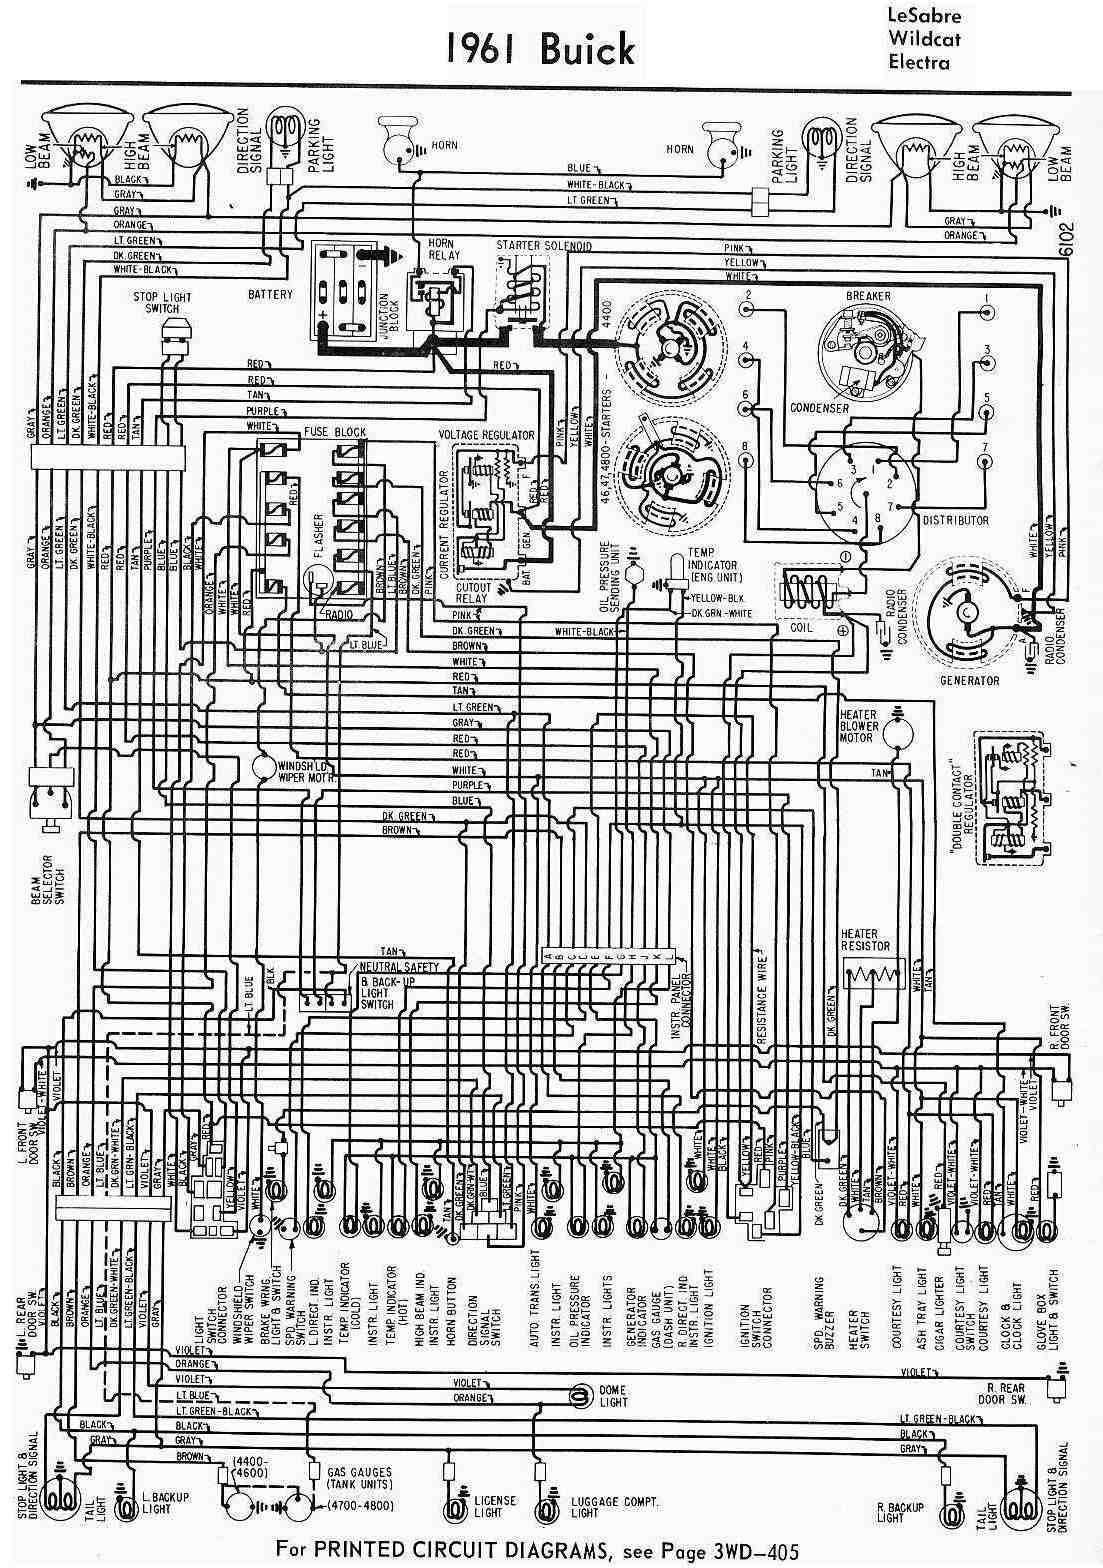 december 2011 all about wiring diagrams 2001 mustang wiring harness diagram